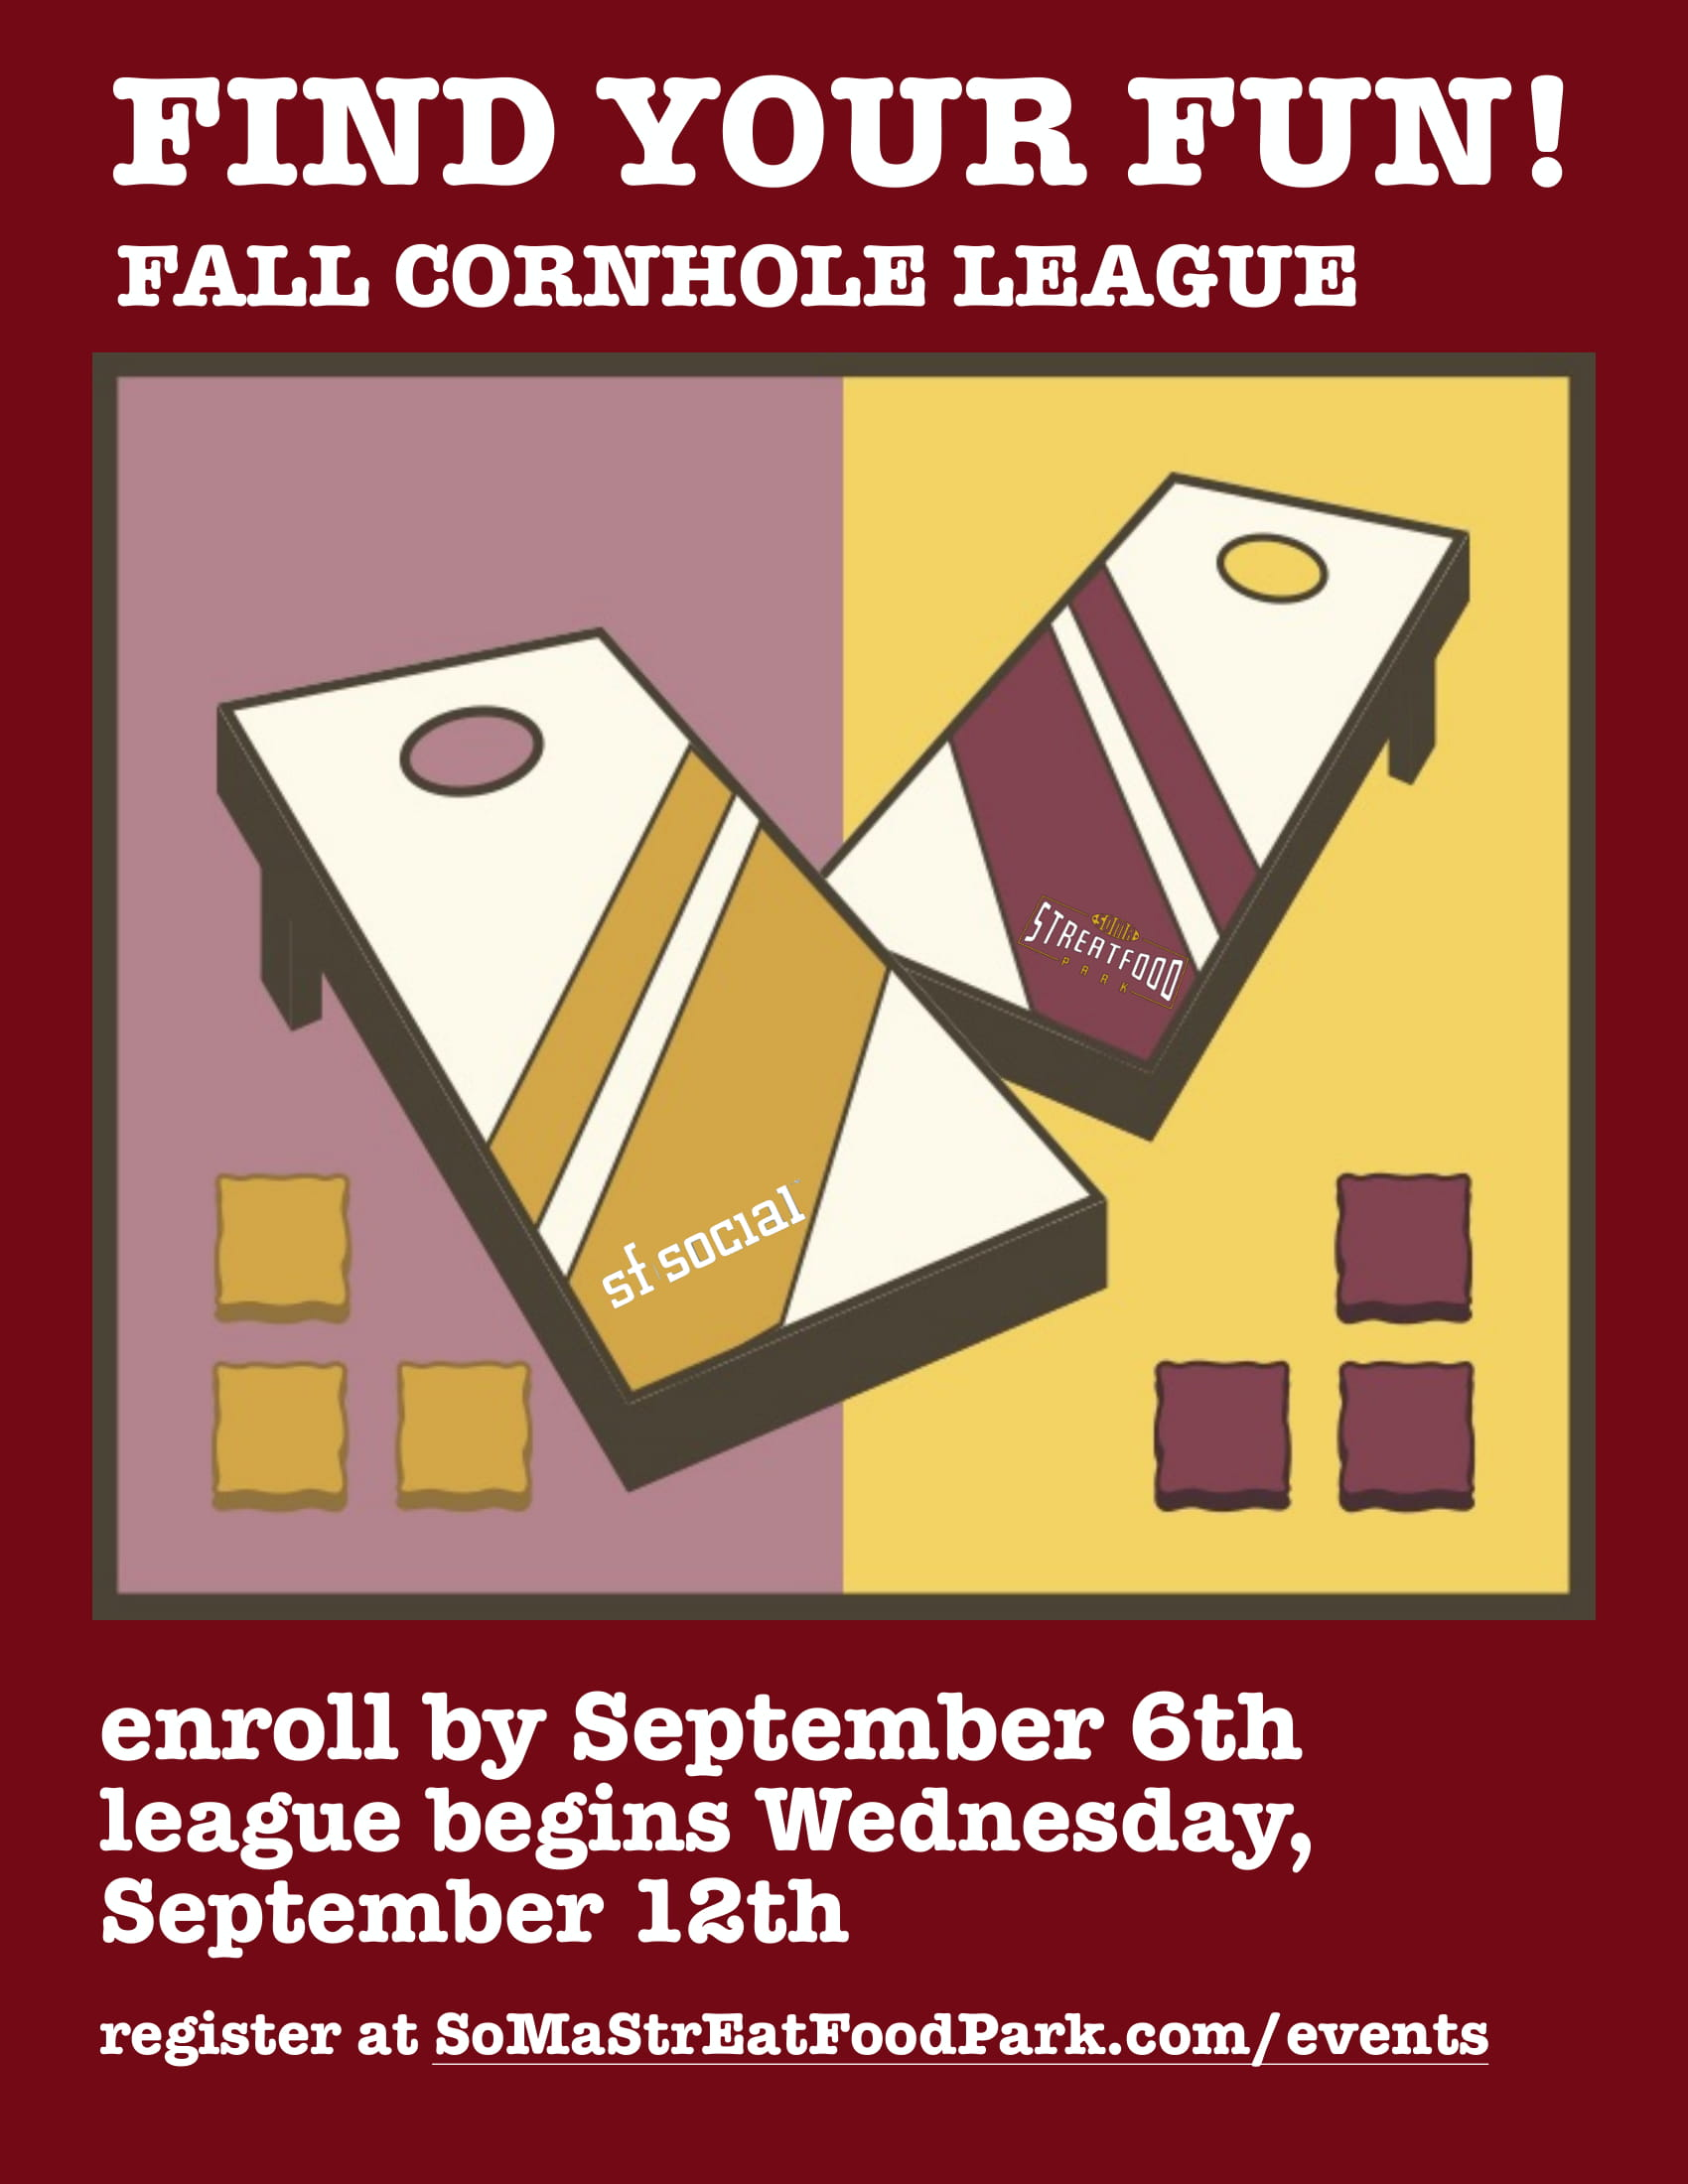 fall cornhole league-1.jpg